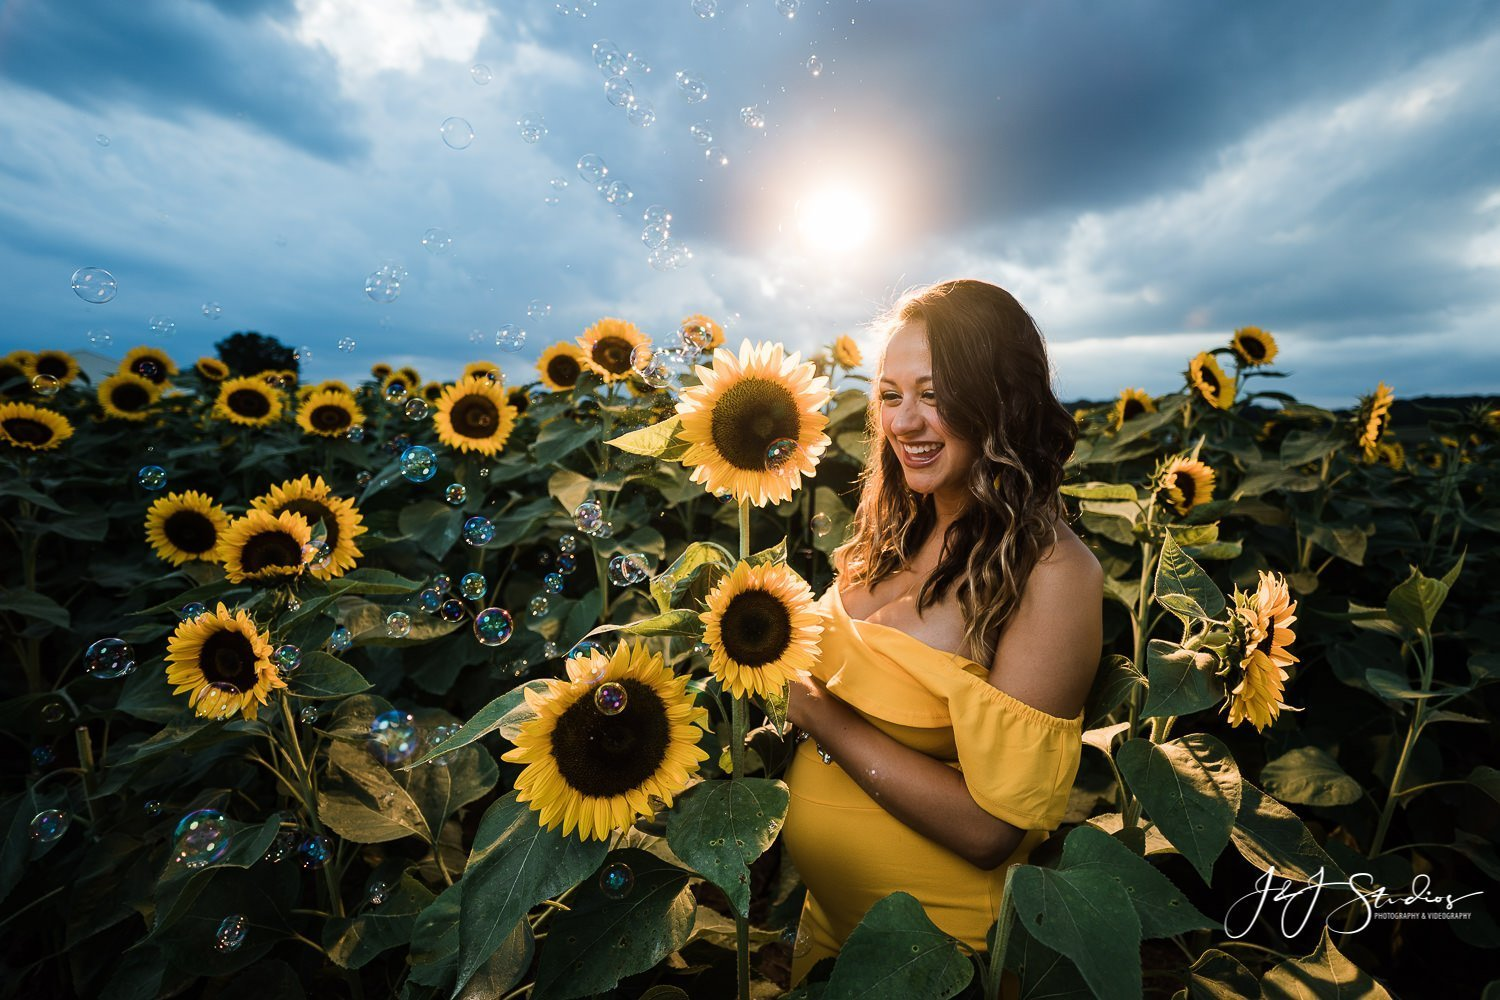 best philly sunflower maternity shoot Best Philadelphia Maternity Photography